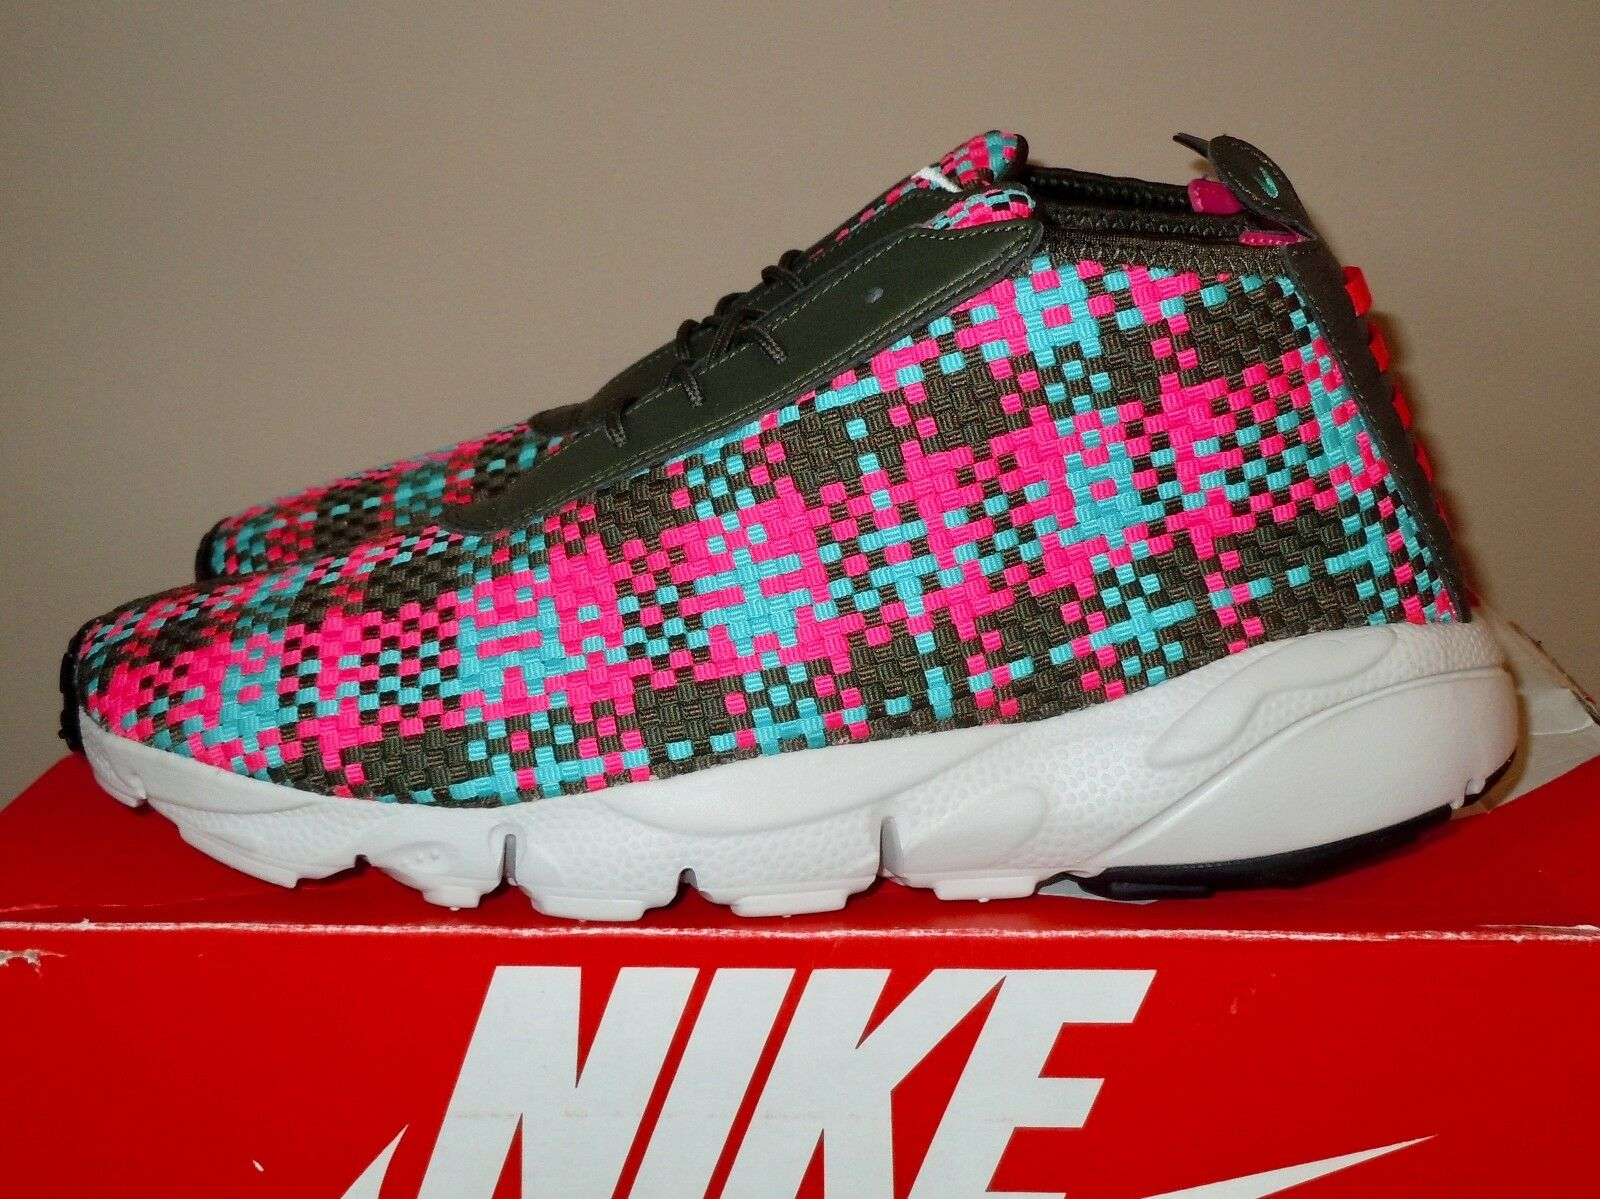 NIB VINTAGE 2014 MENS NIKE FOOTSCAPE DESERT BASKETBALL SHOE 652822-400 10.5 Price reduction The latest discount shoes for men and women